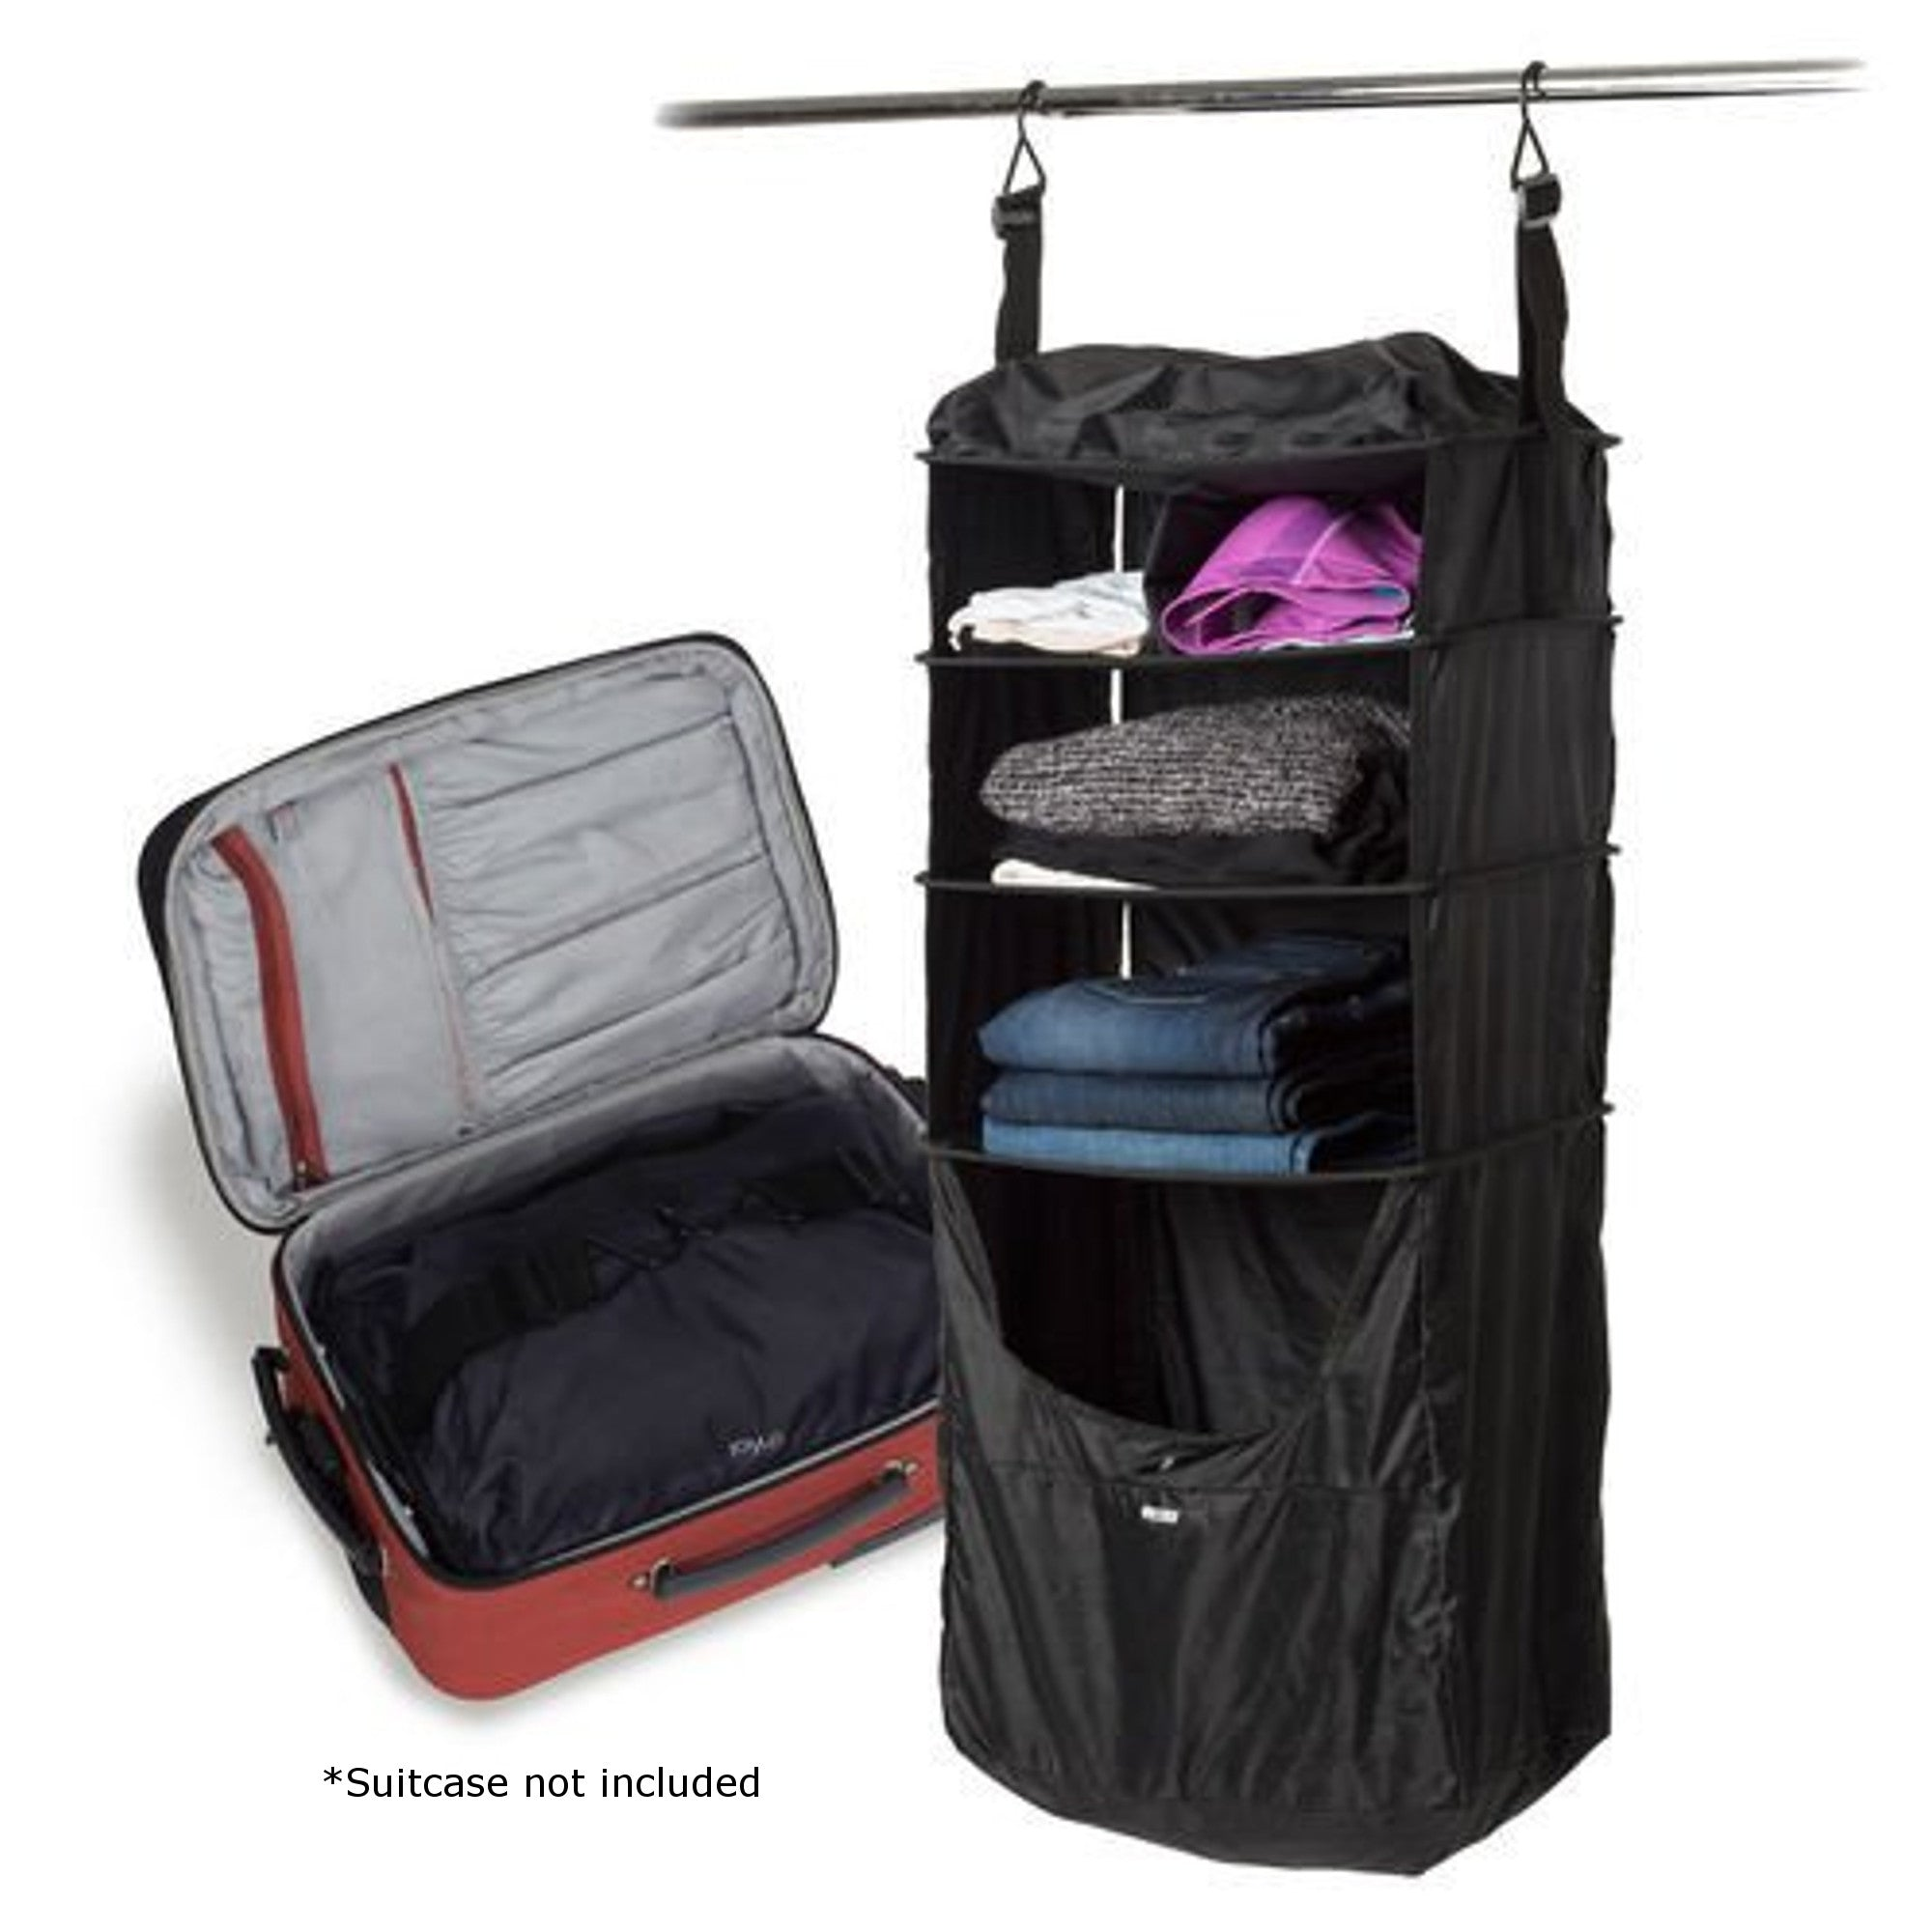 Delicieux Riser, Luggage Shelf